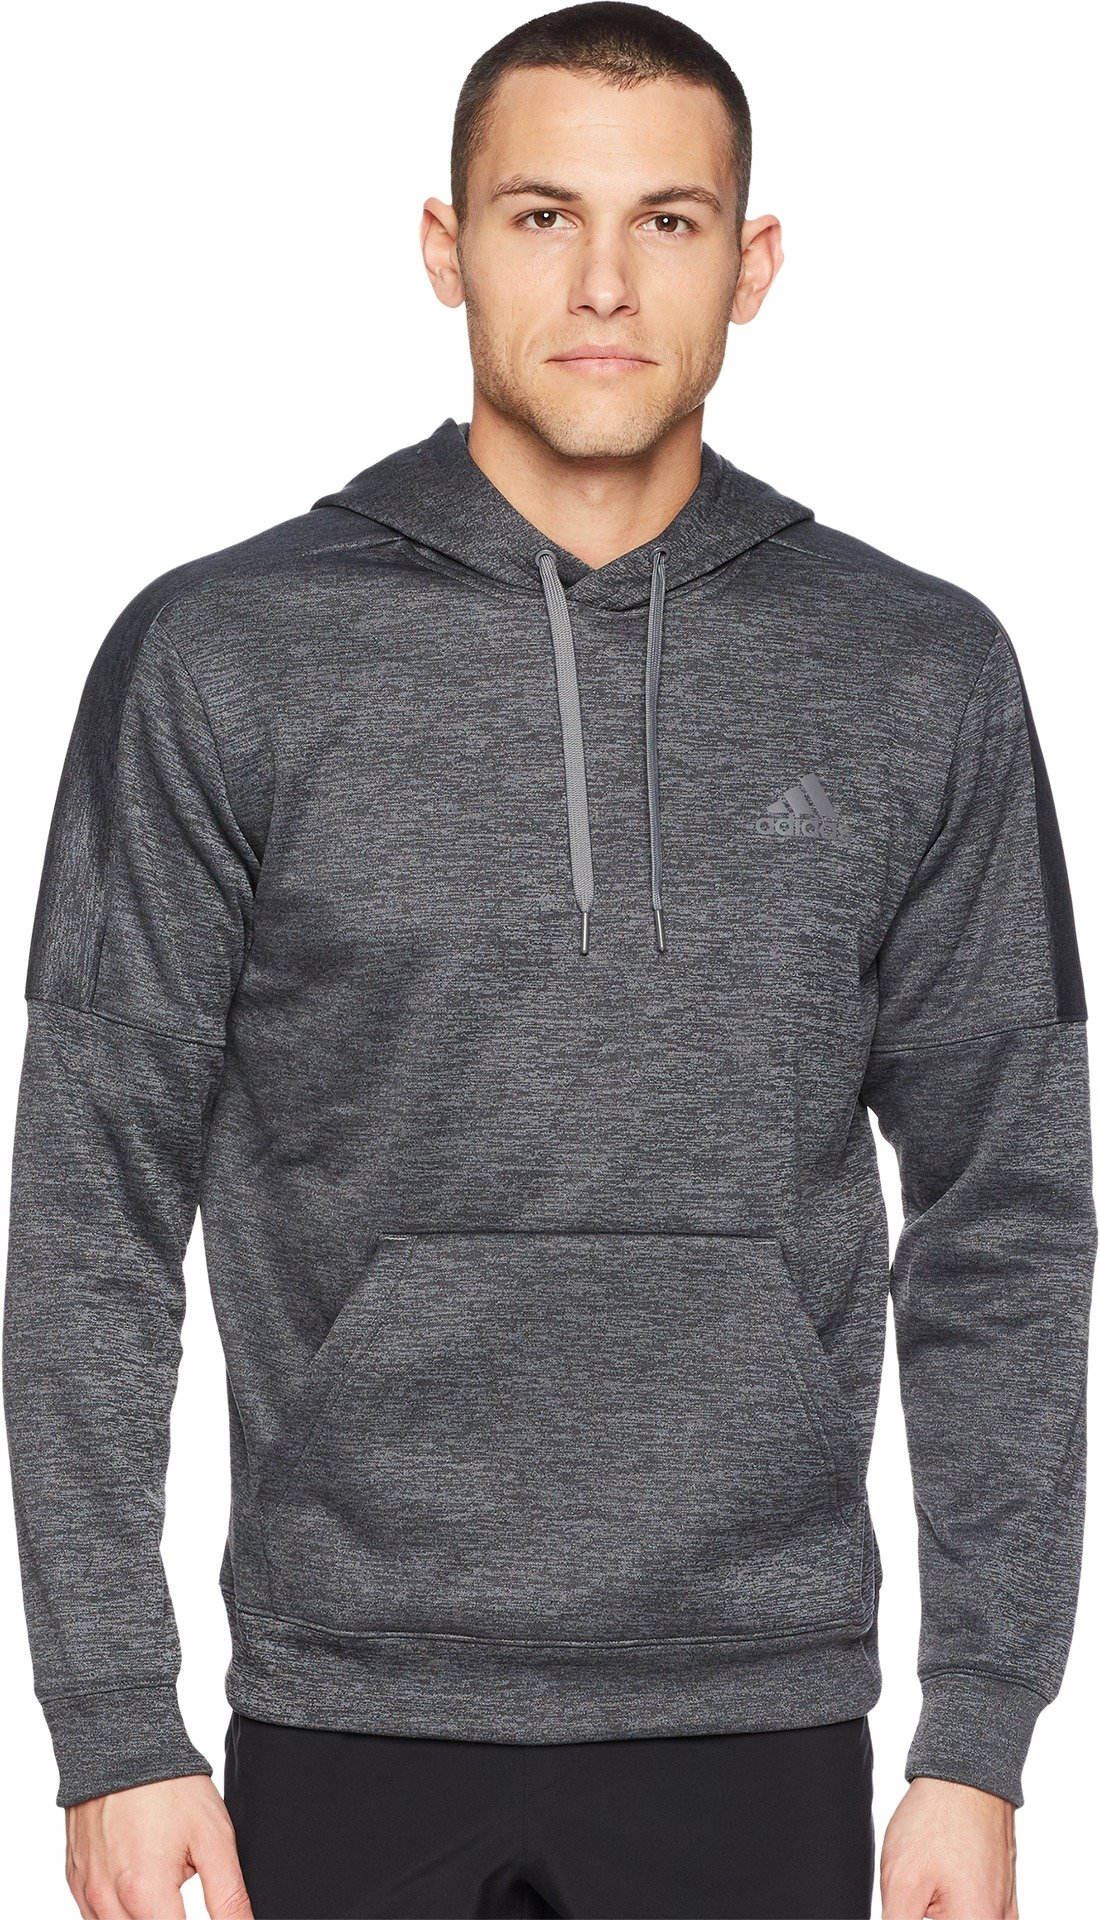 adidas Men's Team Issue Fleece Pullover Hoodie, Dark Grey Melange/Dark Grey, Medium